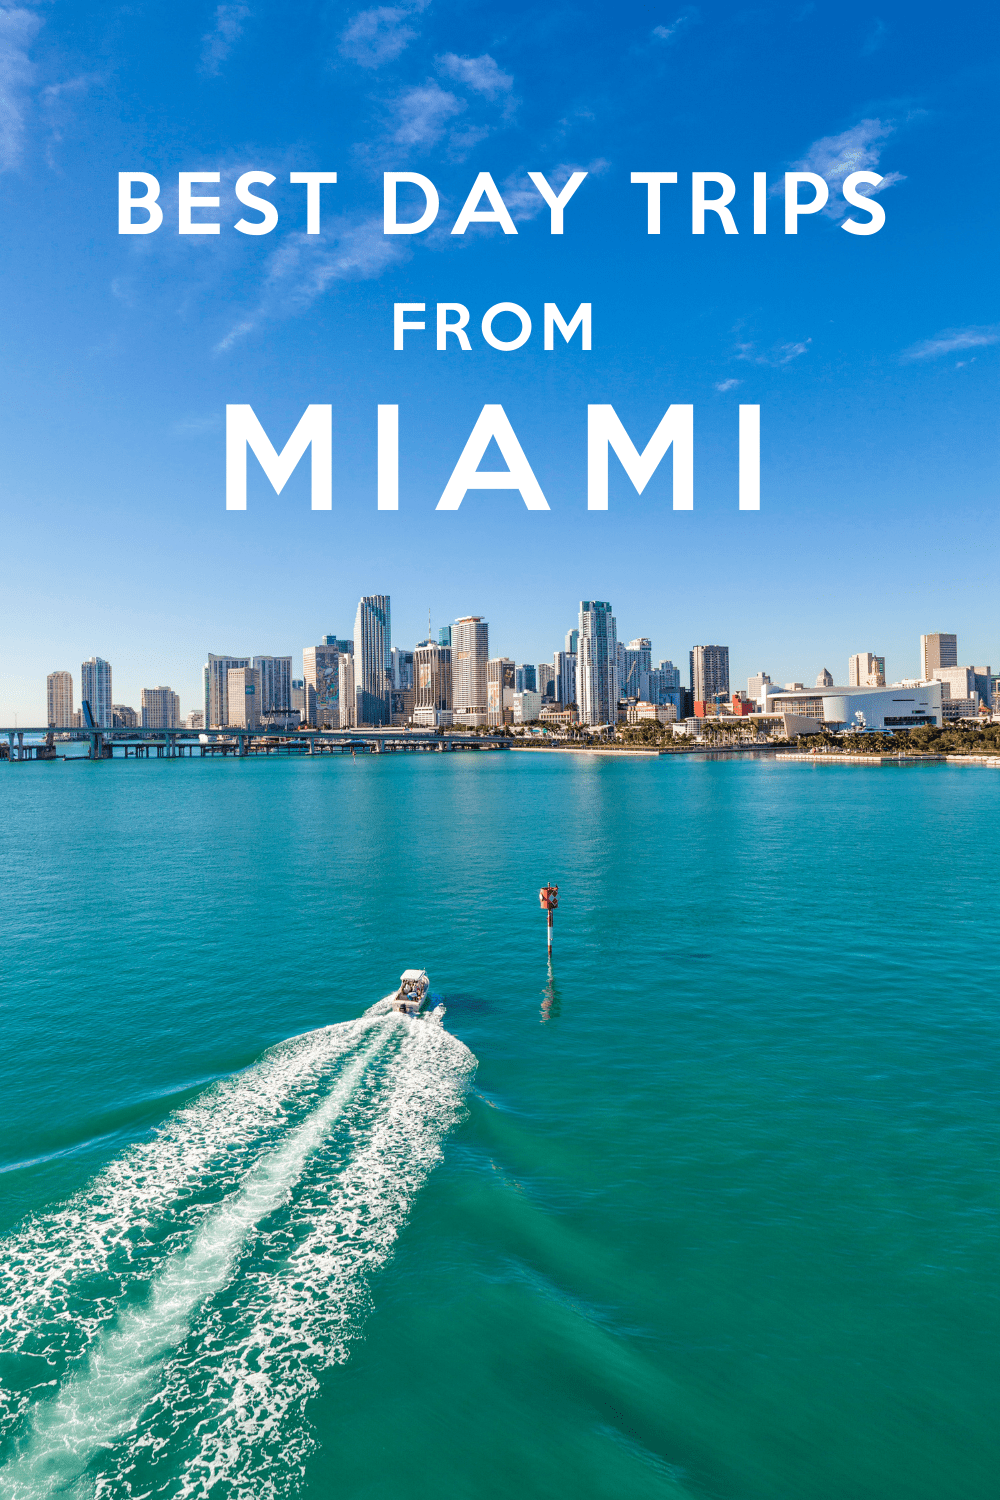 A boat on biscayne bay in foreground, miami in background. Text overlay says best day trips from Miami